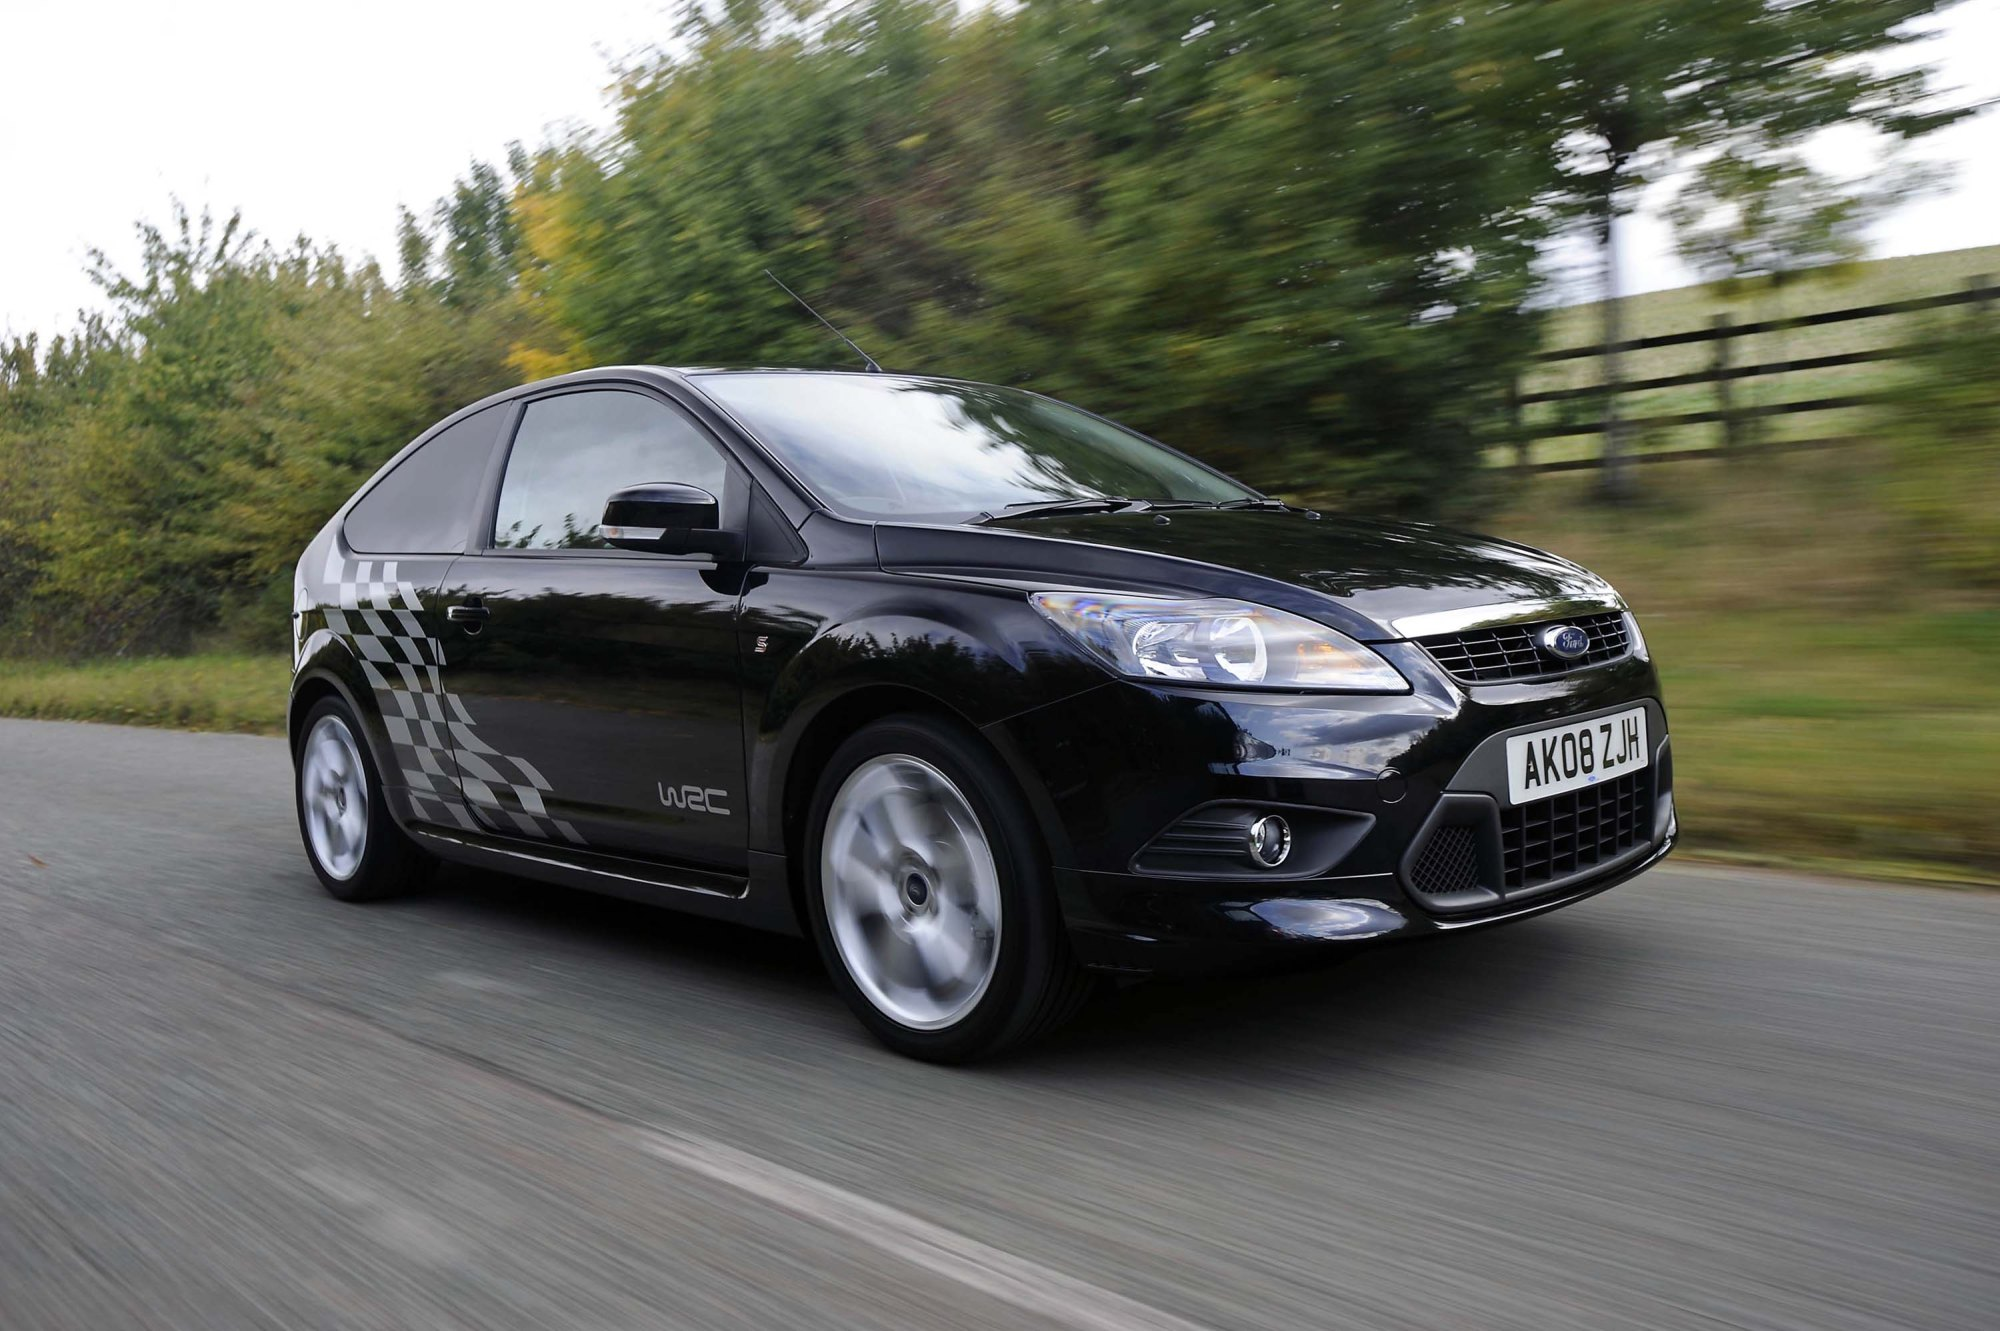 hight resolution of ford focus zetec s